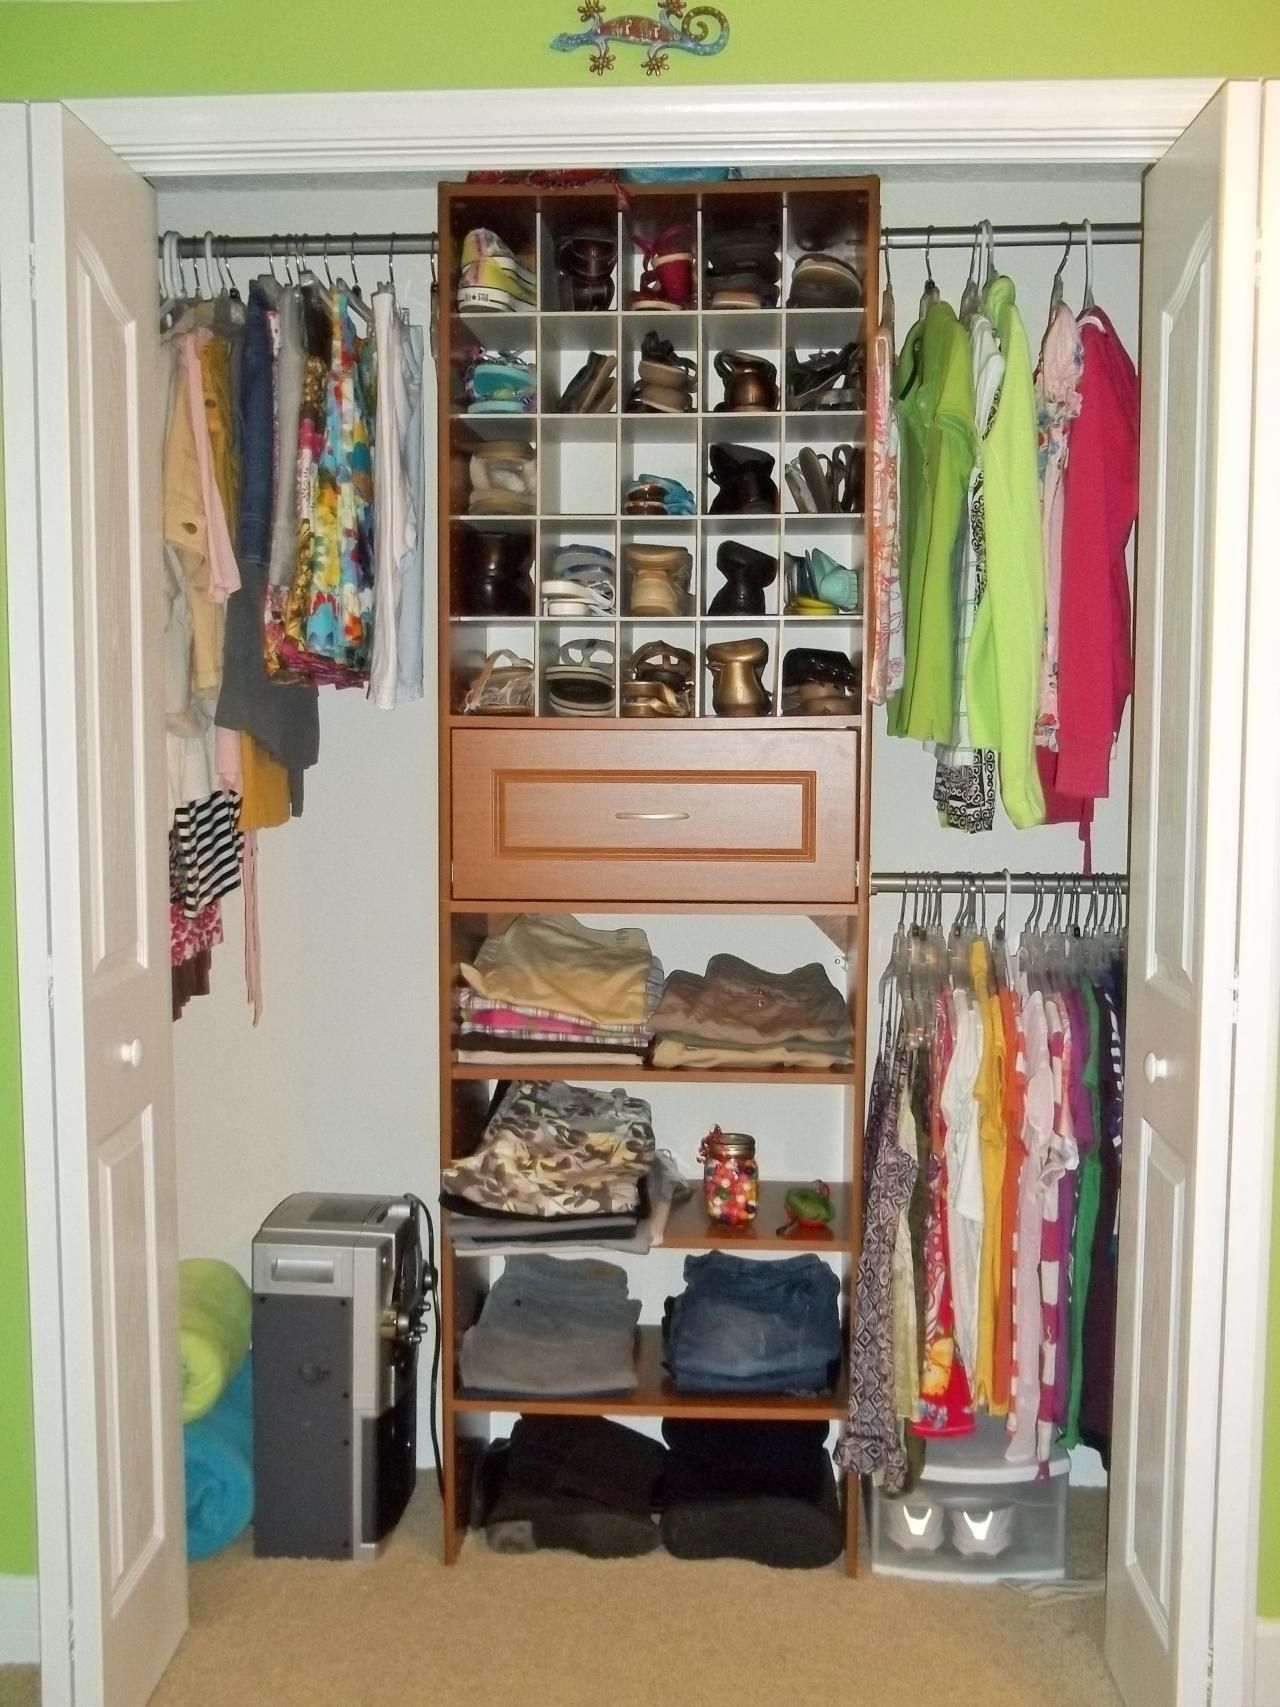 Sketch of small bedroom closet organization ideas for Storage ideas for small bedrooms with no closet